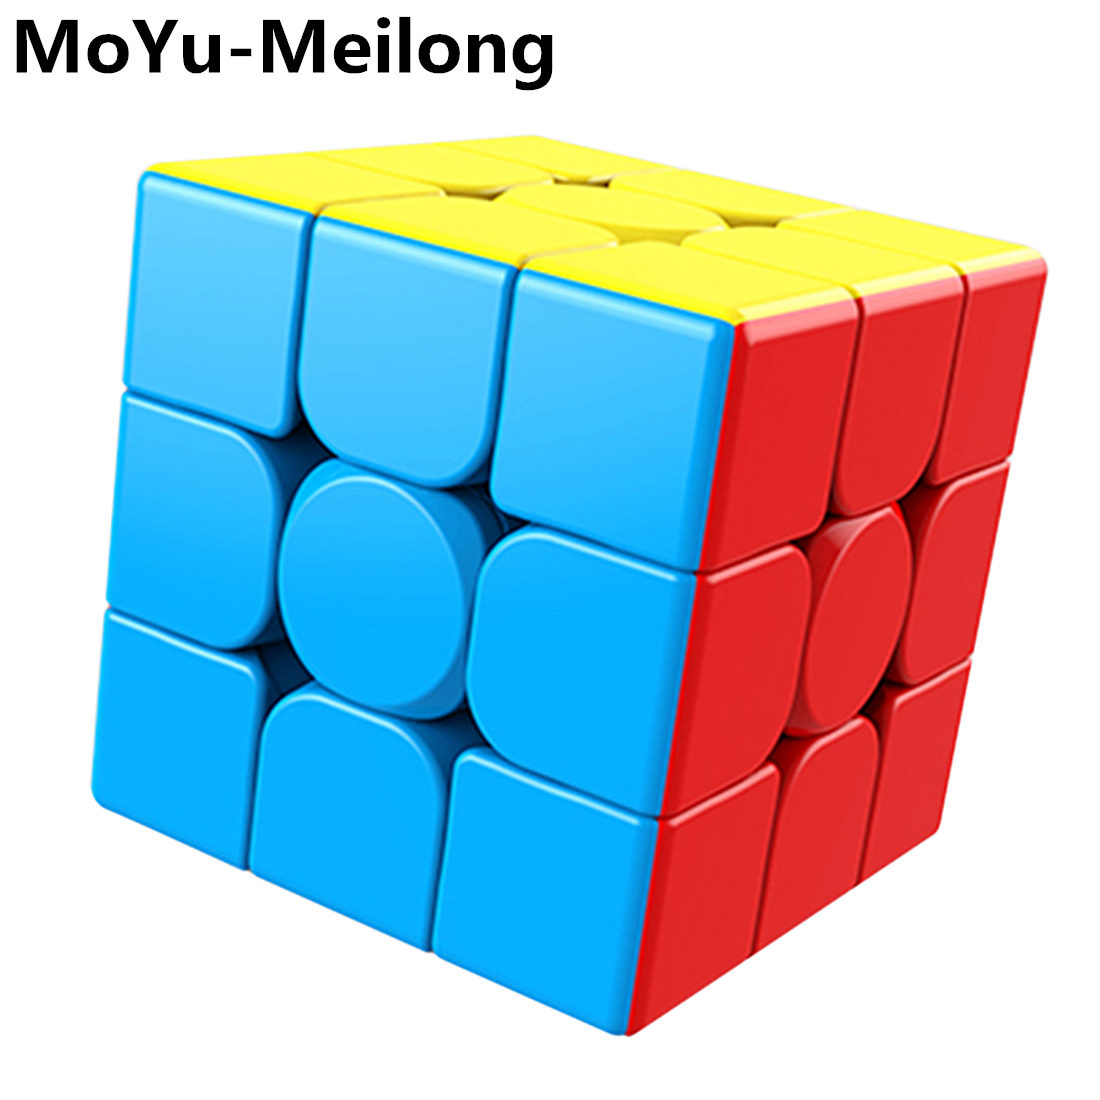 MoYu 3x3x3 Meilong Magic Cube Stickerless Puzzle Cubes Professional Speed Cubes Educational Toys For Students